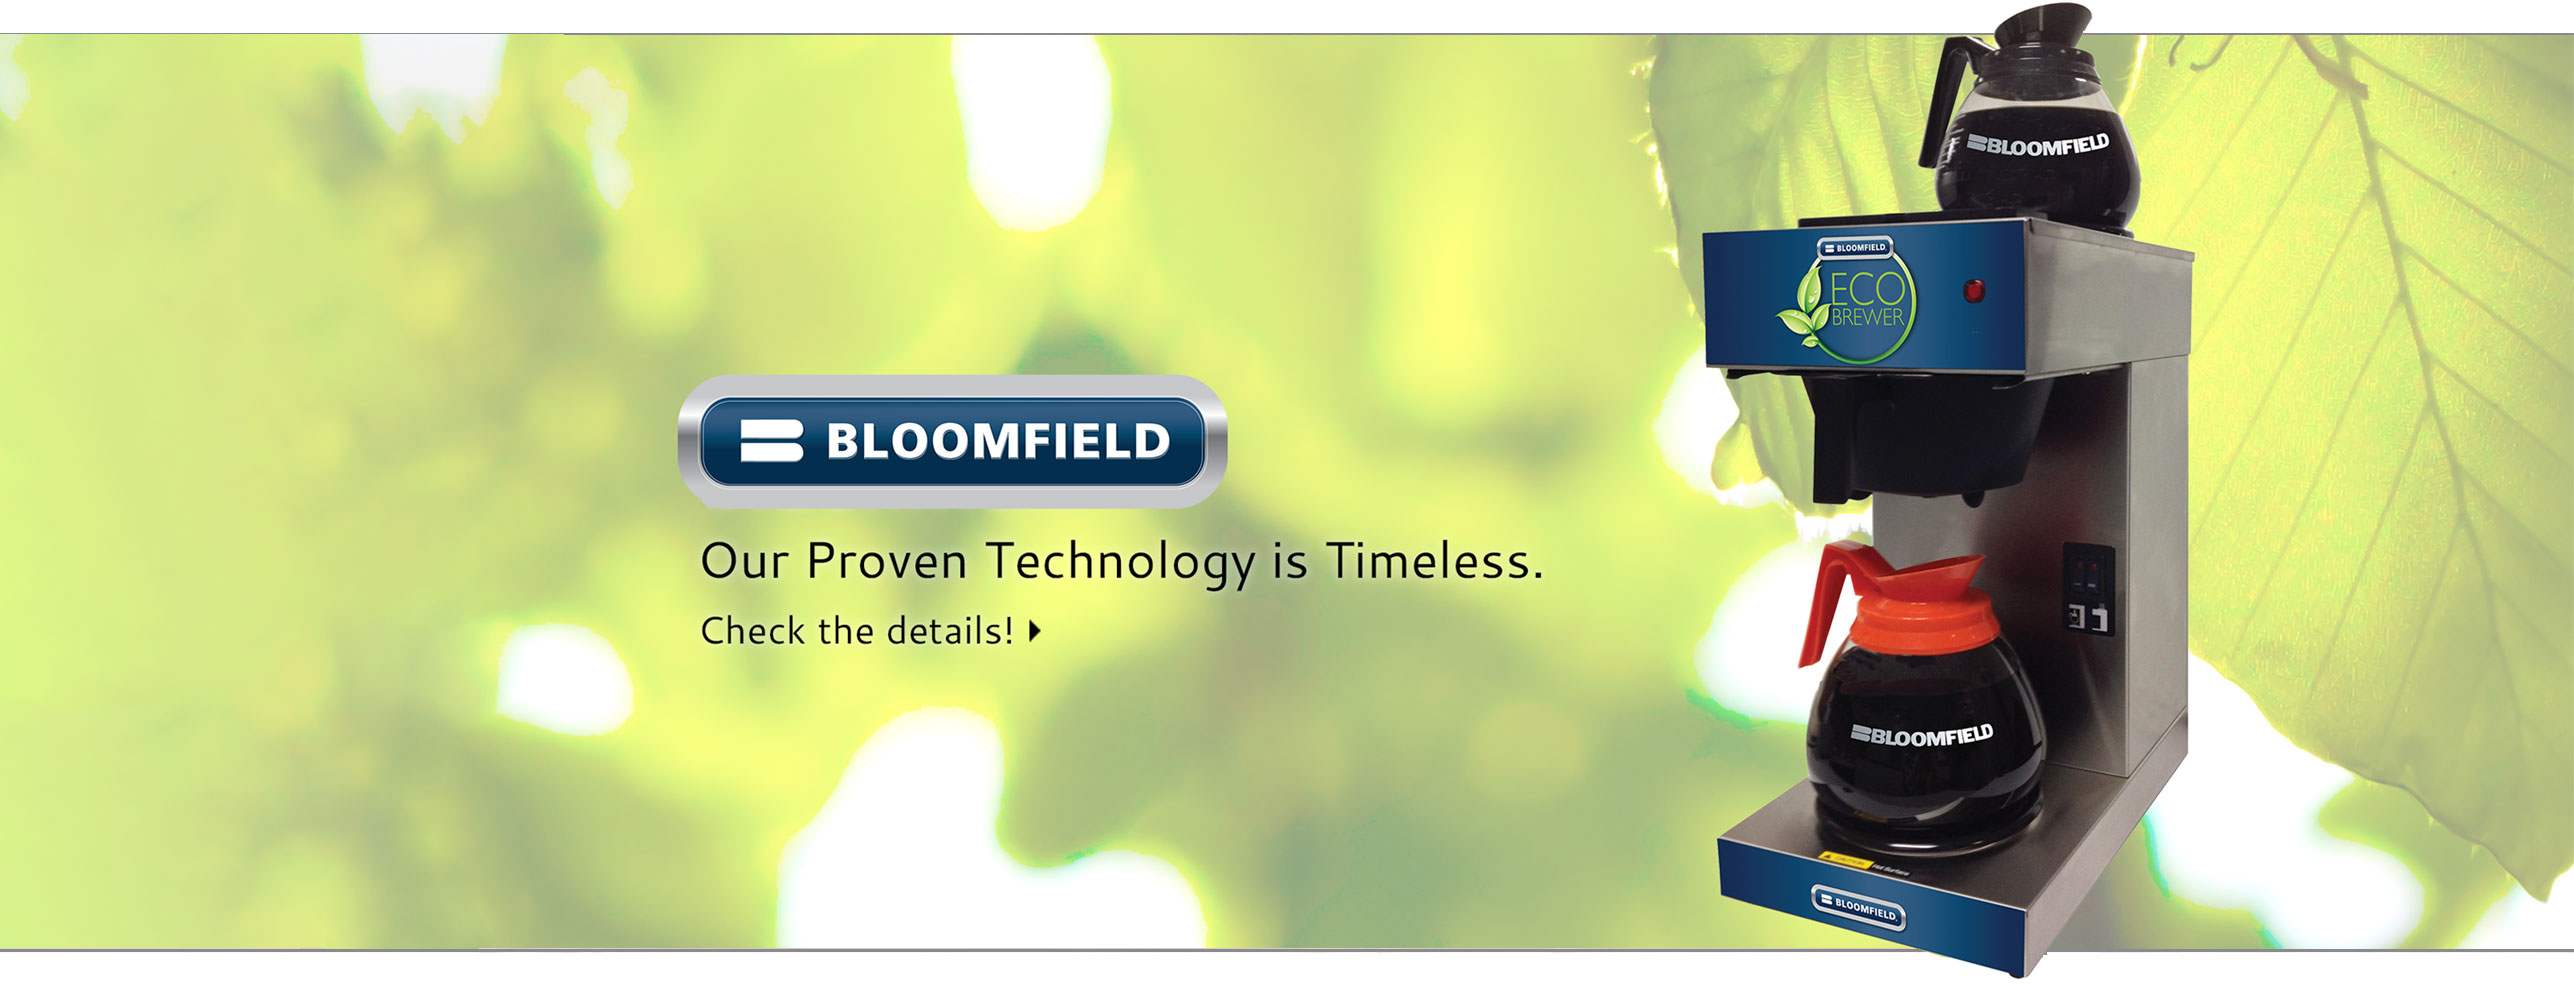 Bloomfield